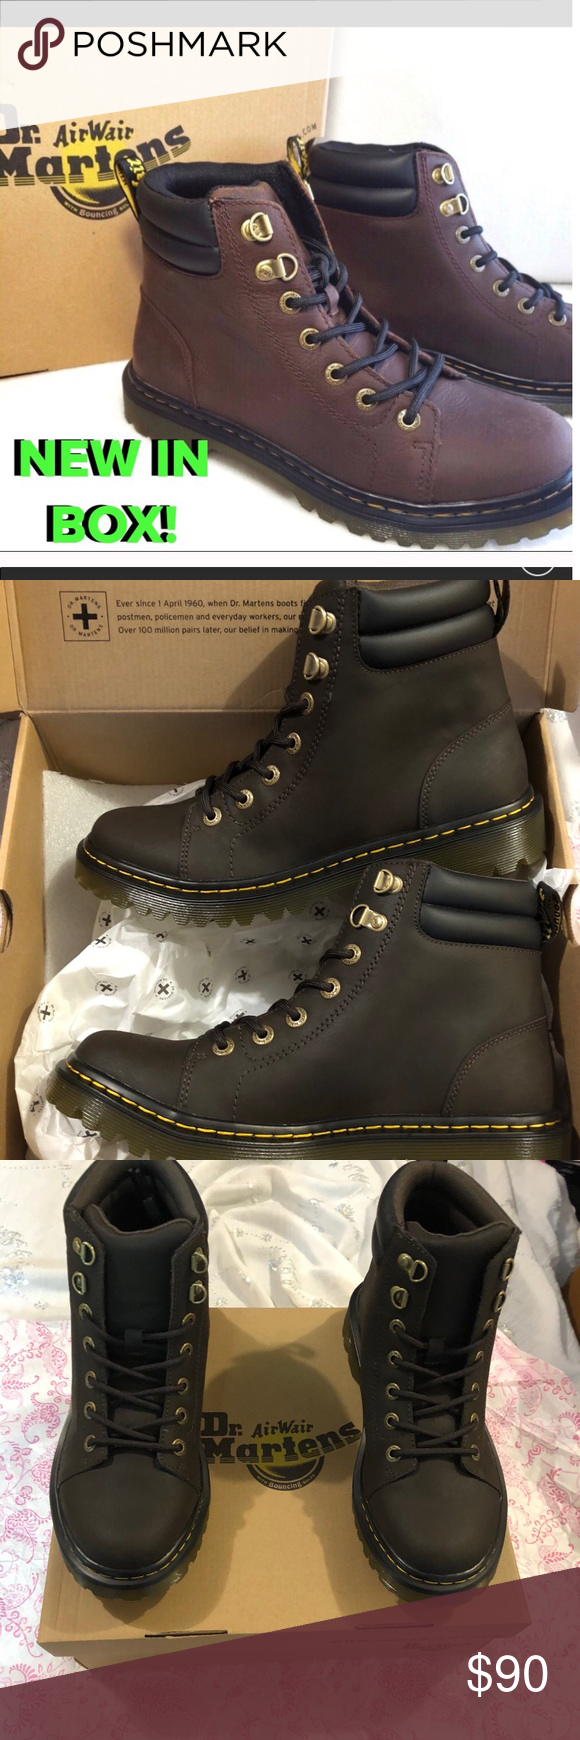 c6246de68bd2 DR MARTENS FAORA BOOTS NEW WITH ALL TAGS   IN ORIGINAL BOX! Dr. Martens  Shoes Lace Up Boots